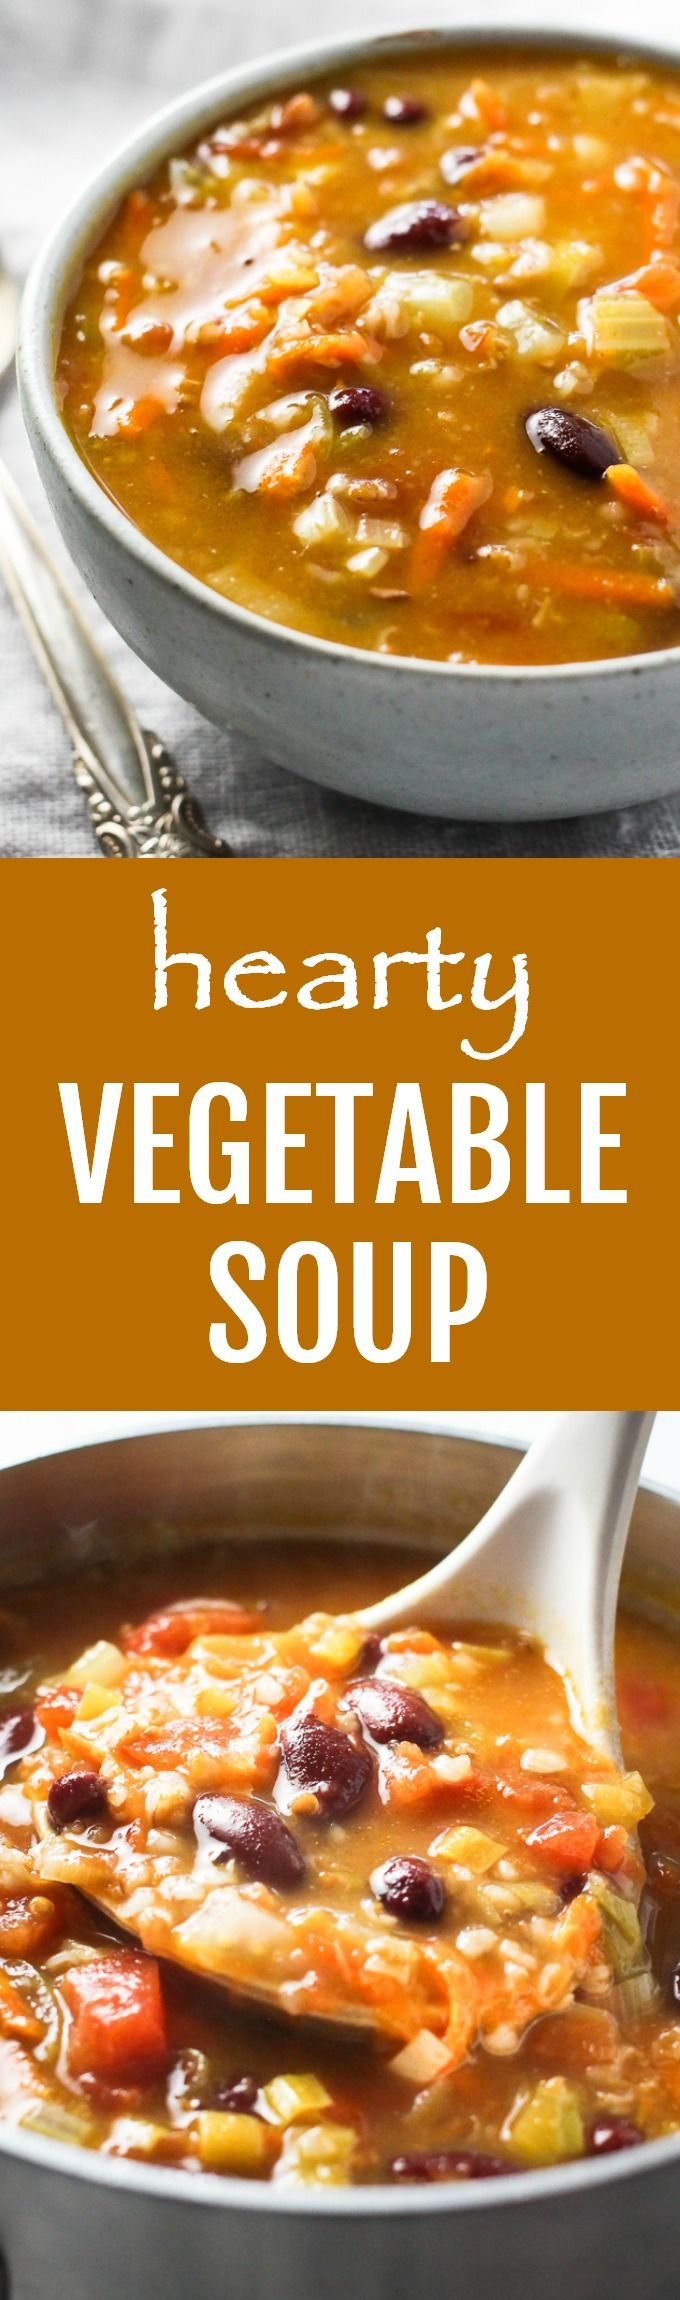 This hearty vegetable soup with bulgur is filling, warming, and comforting. It's really easy to make using ingredients you most likely already have on hand. This recipe is high in fiber and vegan.